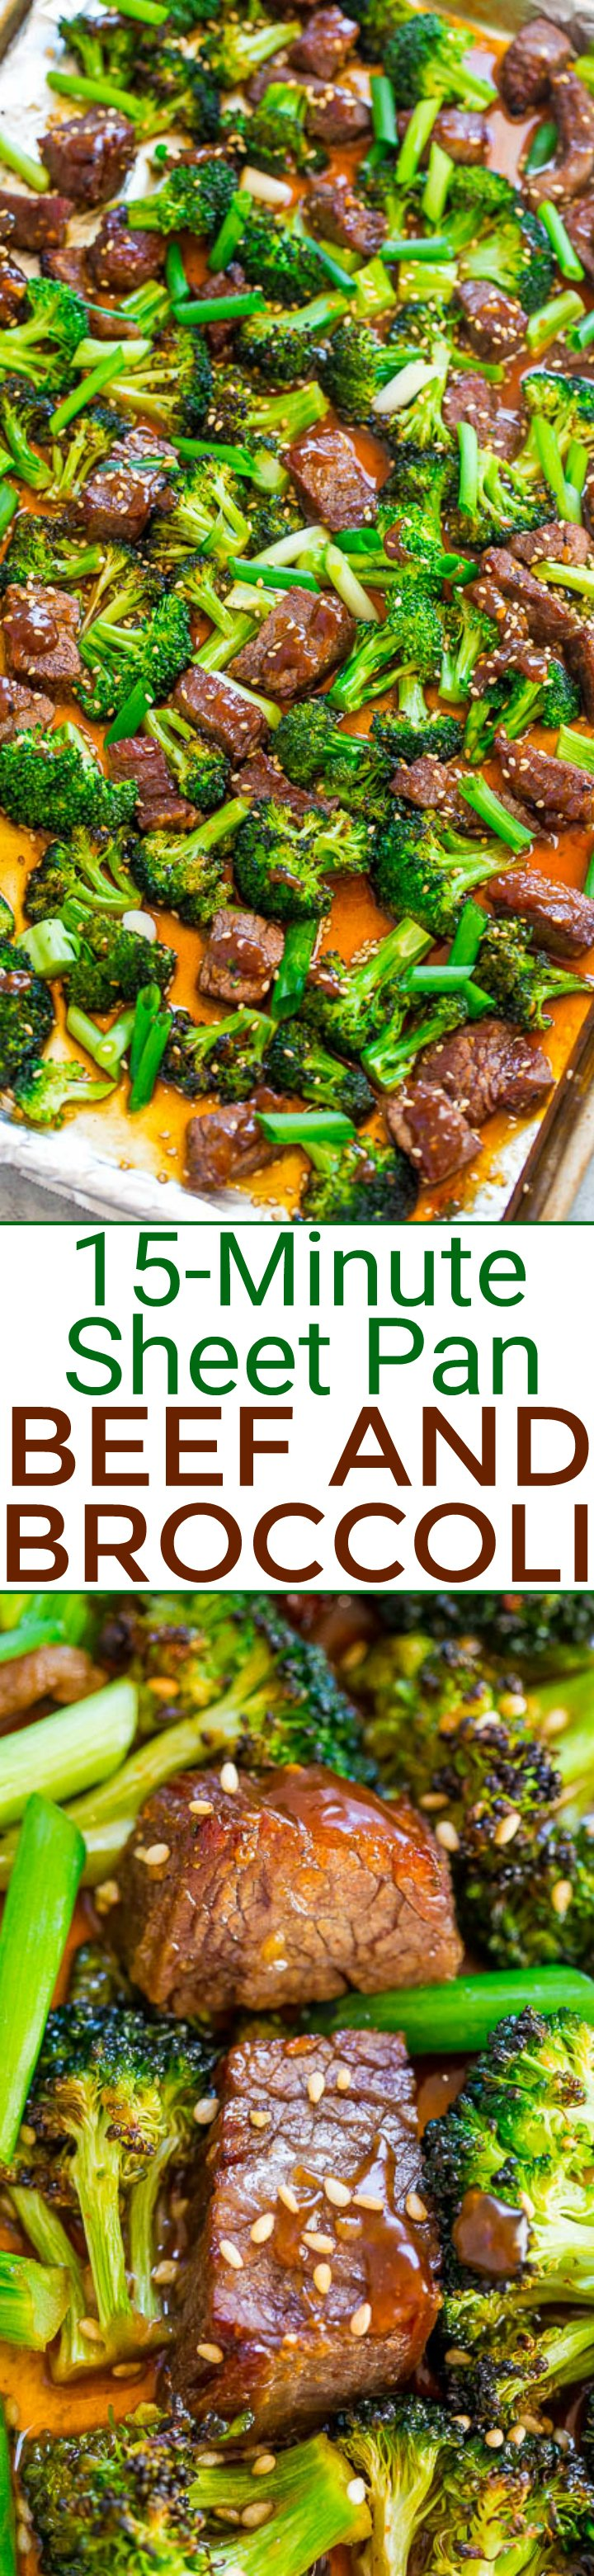 15-Minute Sheet Pan Beef and Broccoli - EASY, HEALTHIER than going out for Chinese because it's baked, and FASTER than calling for takeout!! So much FLAVOR in this family favorite! It'll go into your regular rotation!!